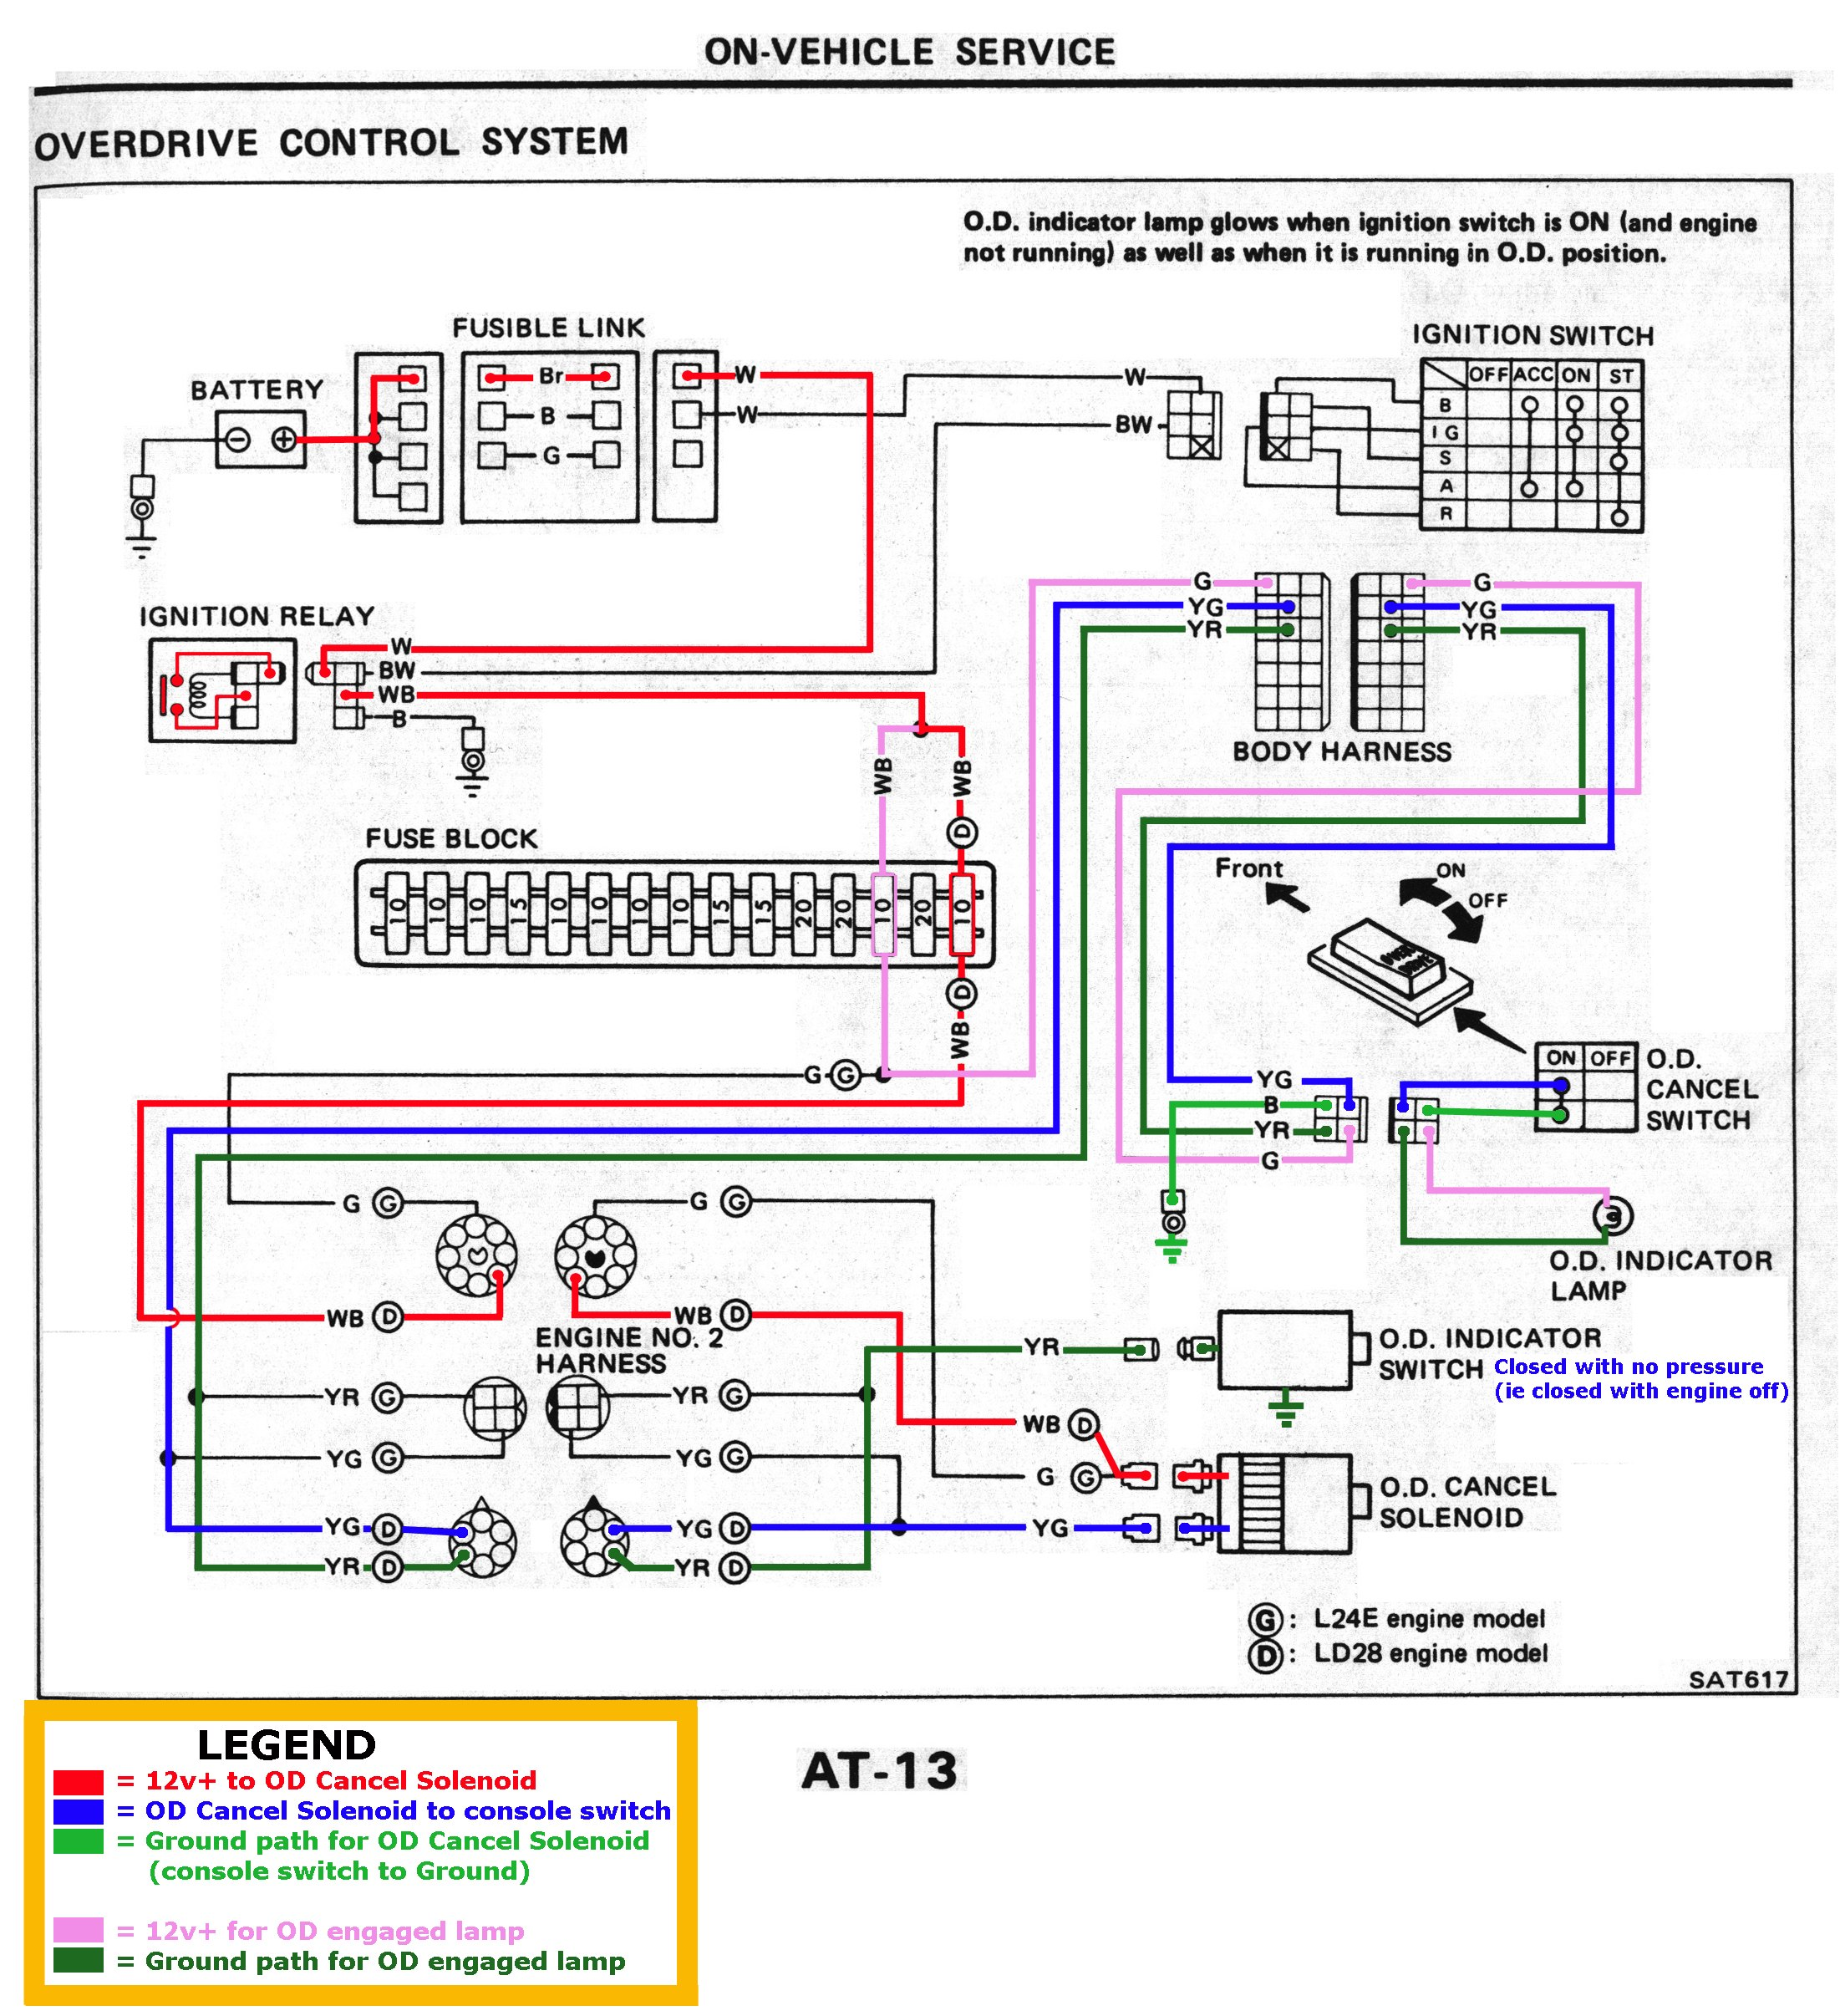 FSM_1983_AT 013 1b nissandiesel forums \u2022 view topic l4n71b (od at, 1983 84) 1983 datsun 280zx turbo wiring diagrams at bayanpartner.co